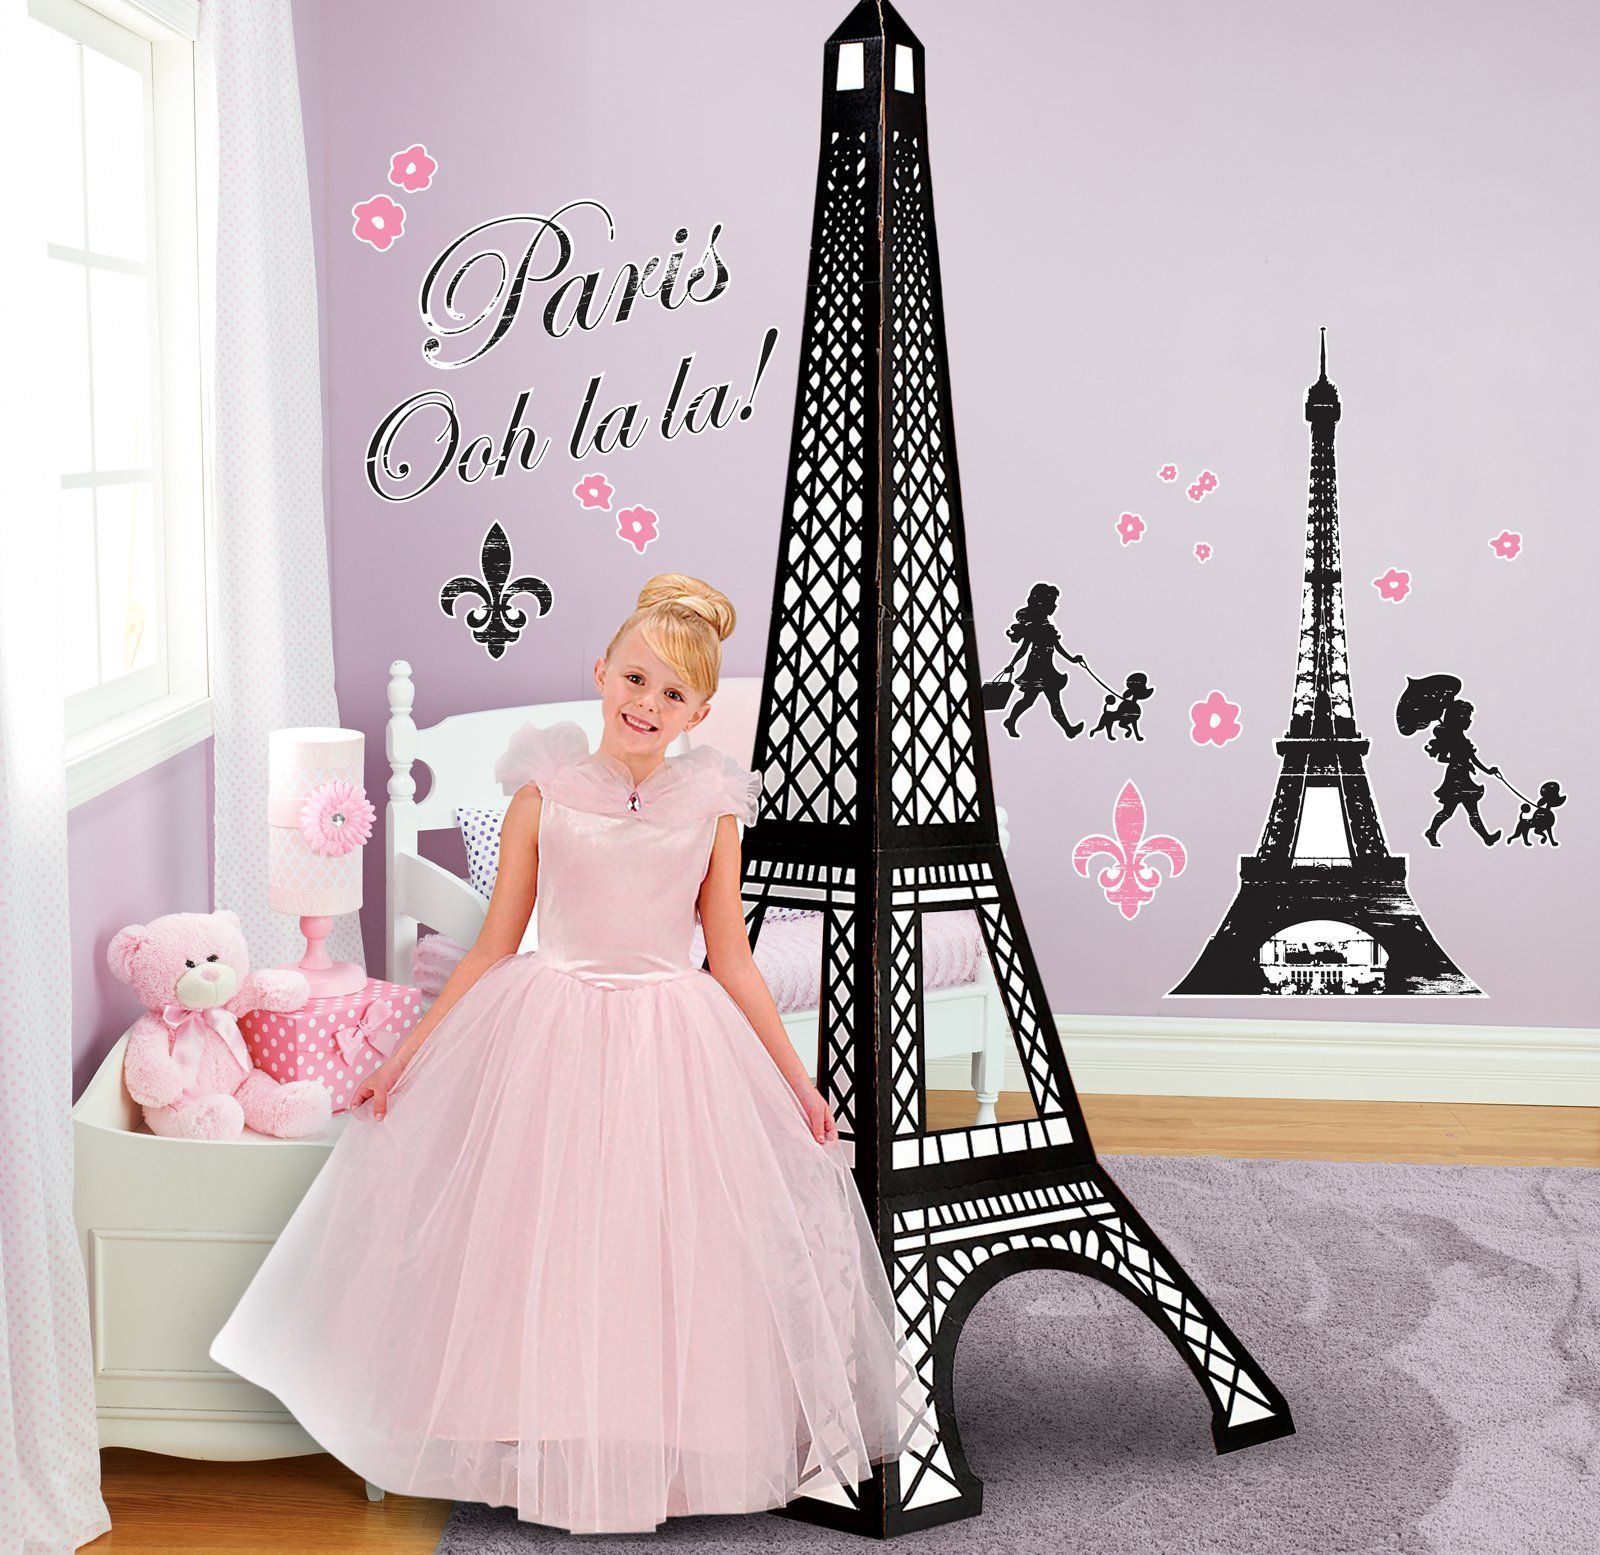 Paris Damask Giant Wall Decals and Standup Kit from BirthdayExpress.com